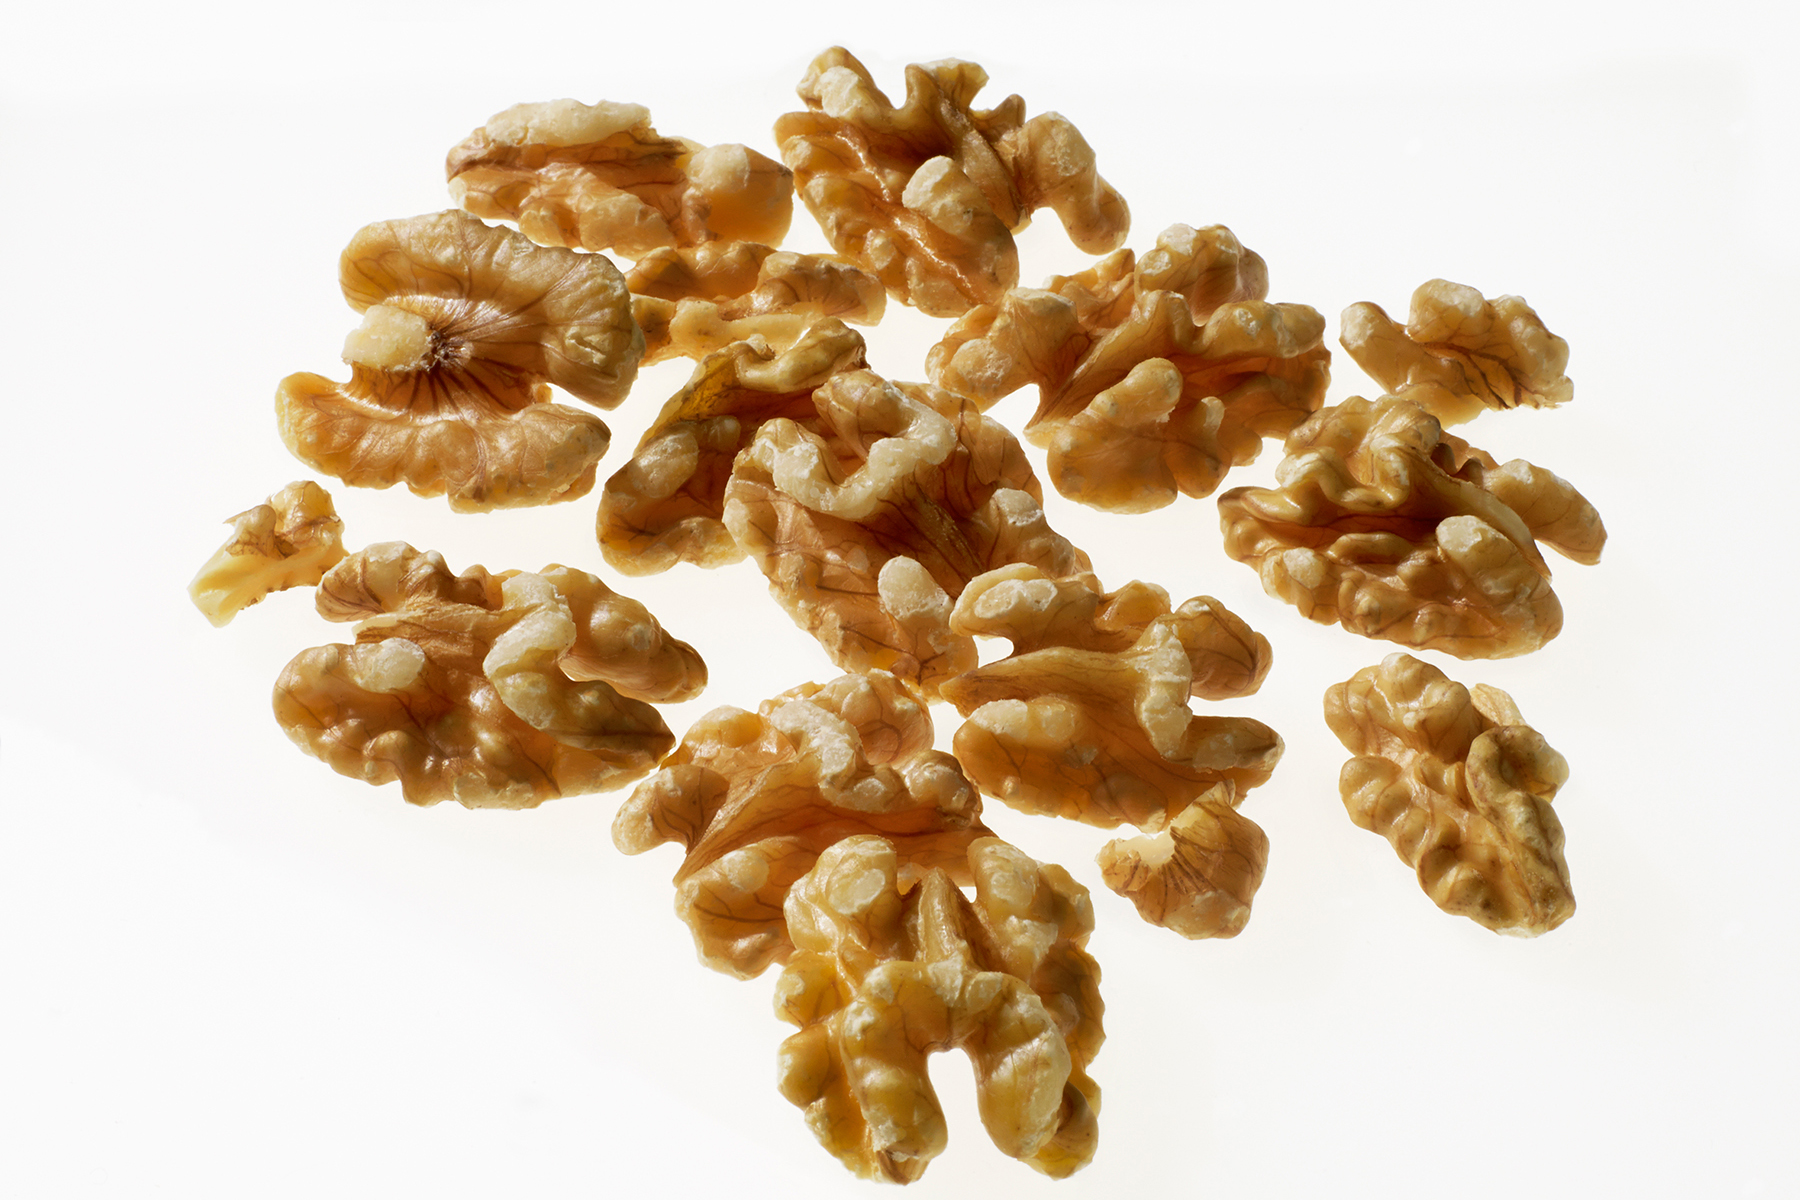 Walnuts. (Photo: California Walnut Commission)